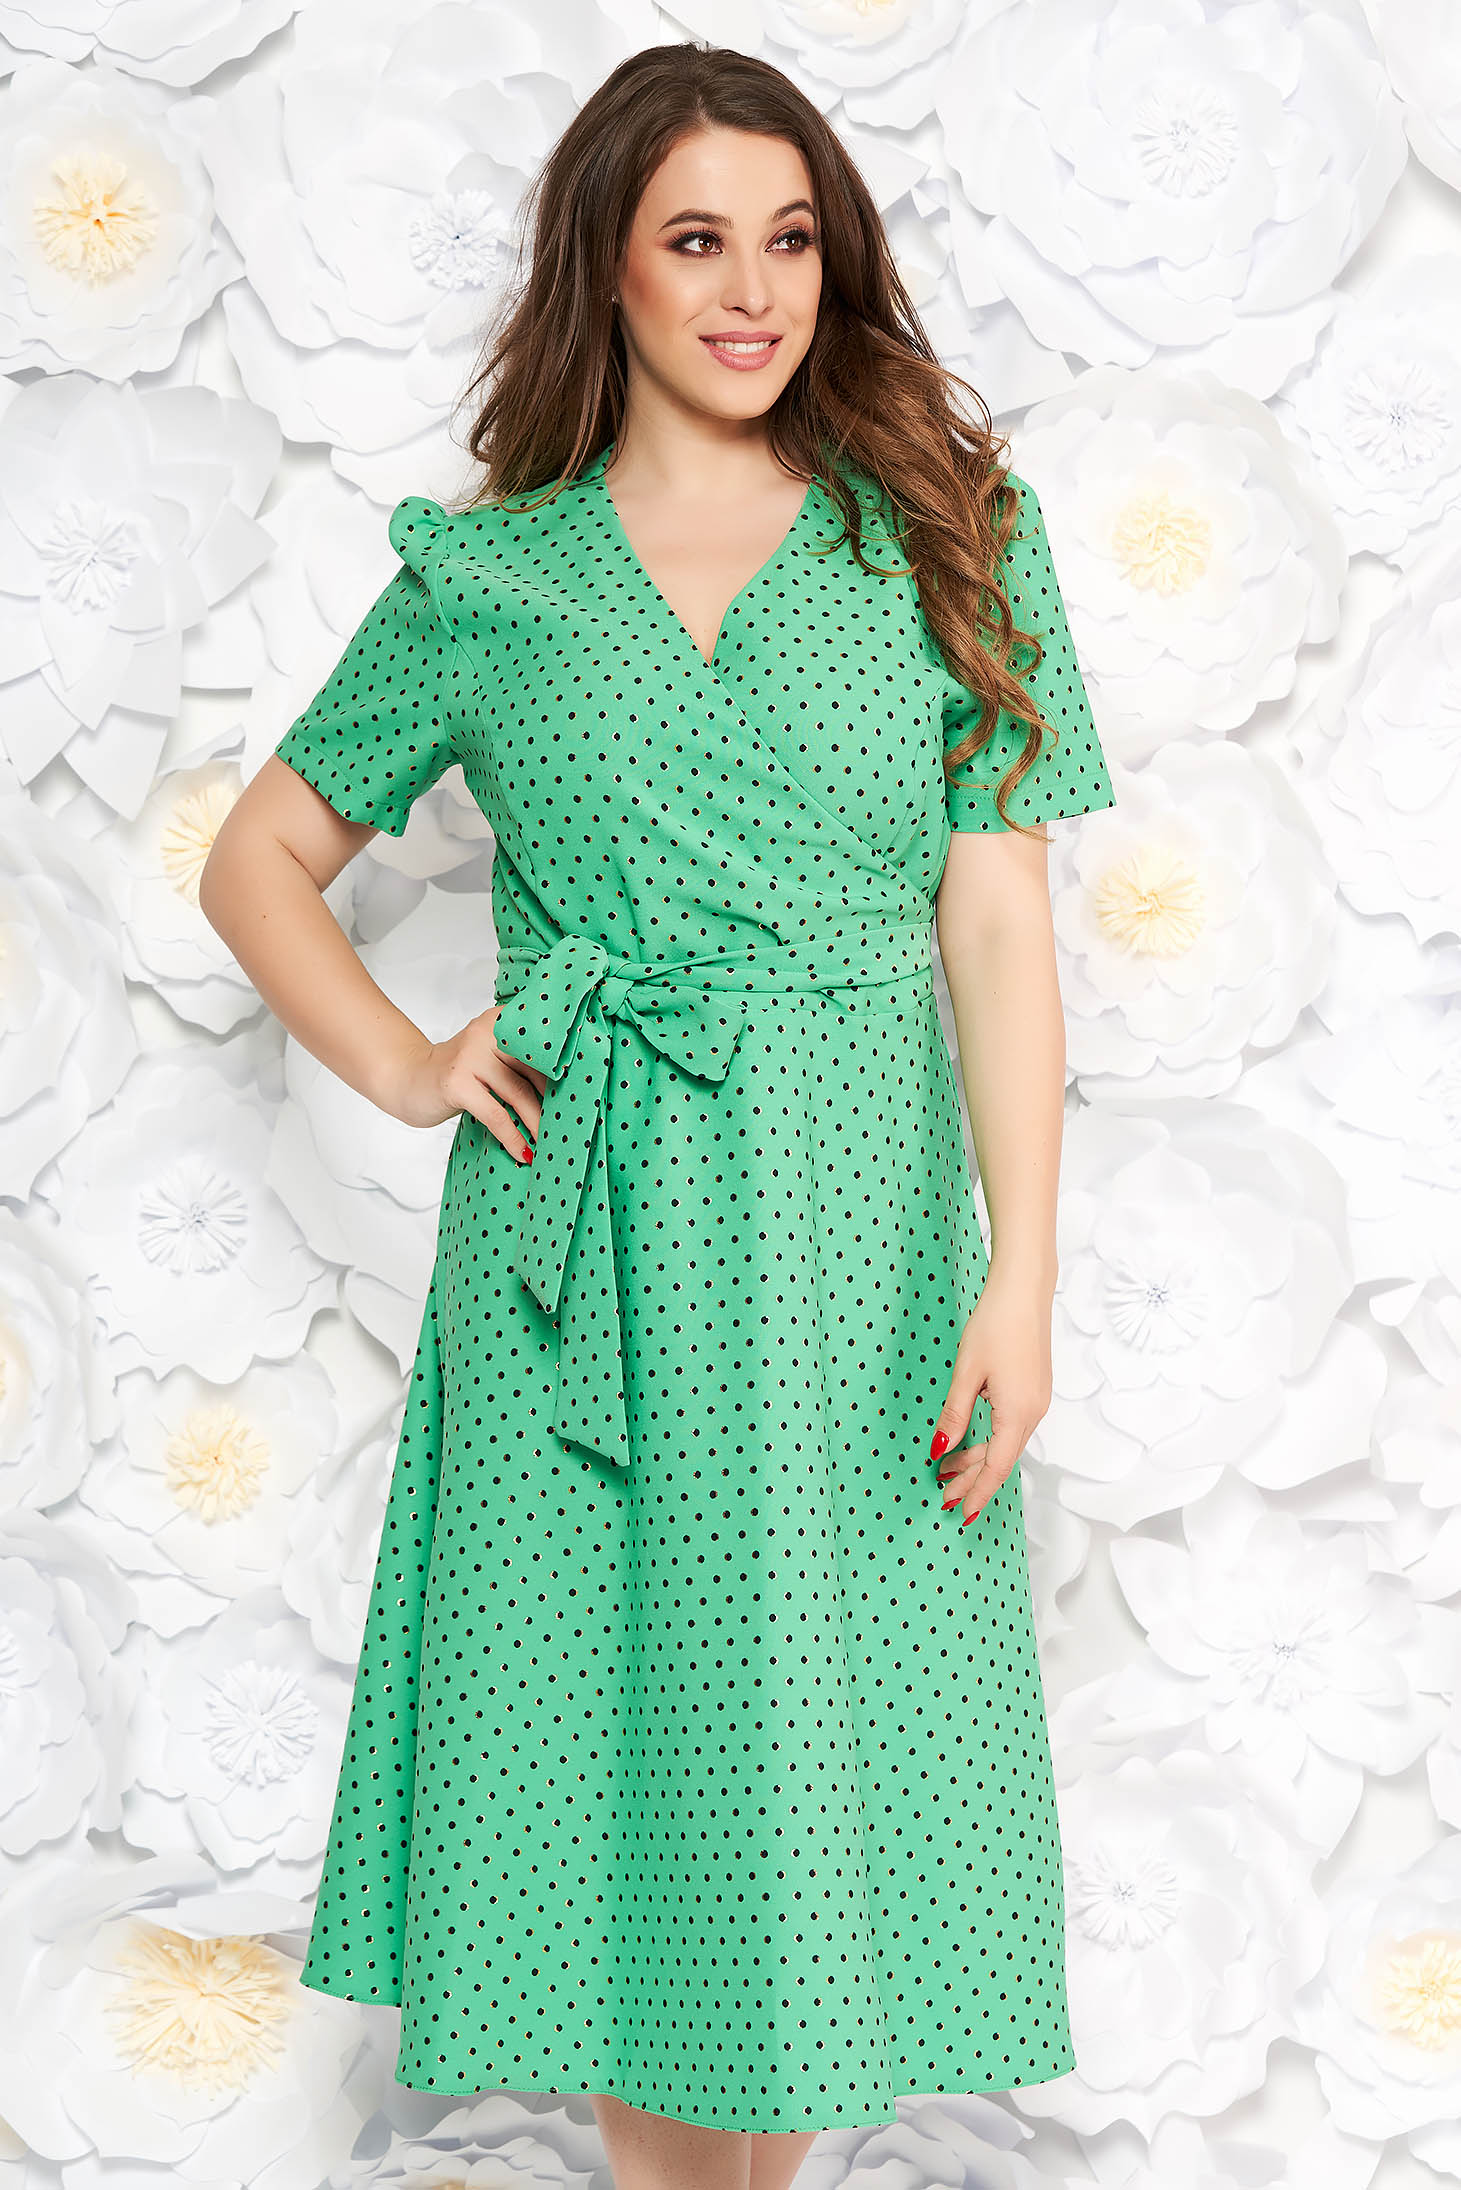 Lightgreen elegant cloche dress slightly elastic fabric with dots print accessorized with tied waistband